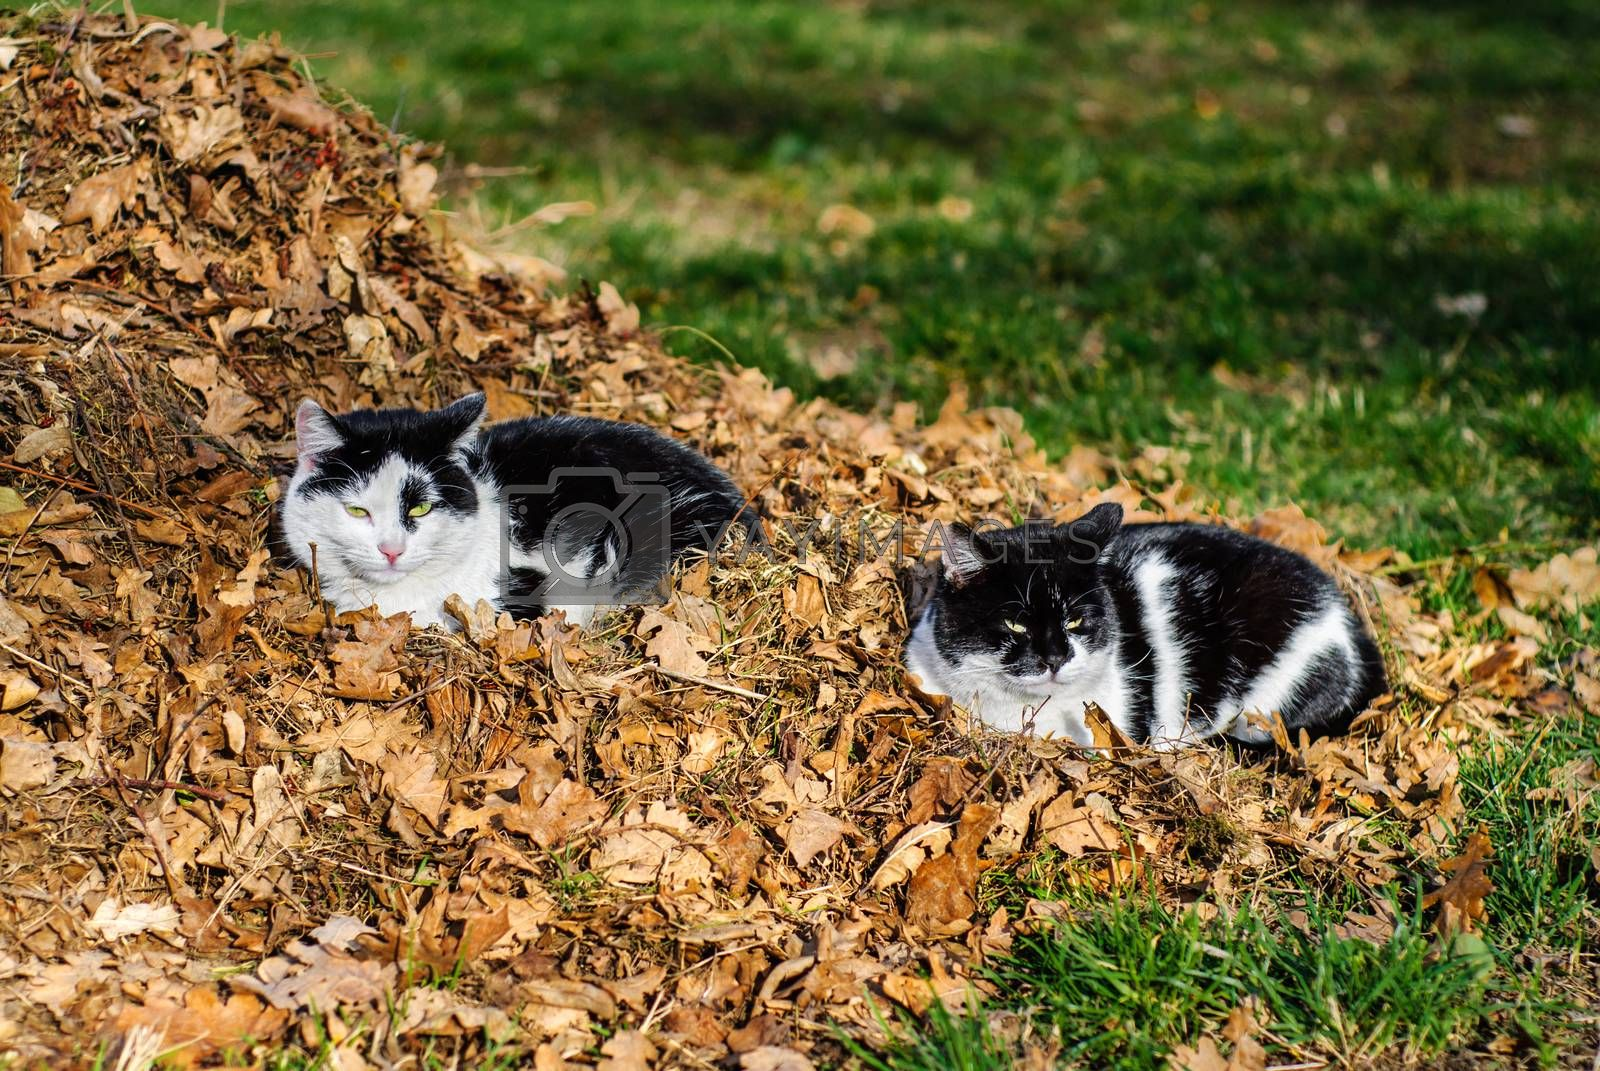 Cat sits on green grass among fallen dry leaves. The last warm days. Autumn.